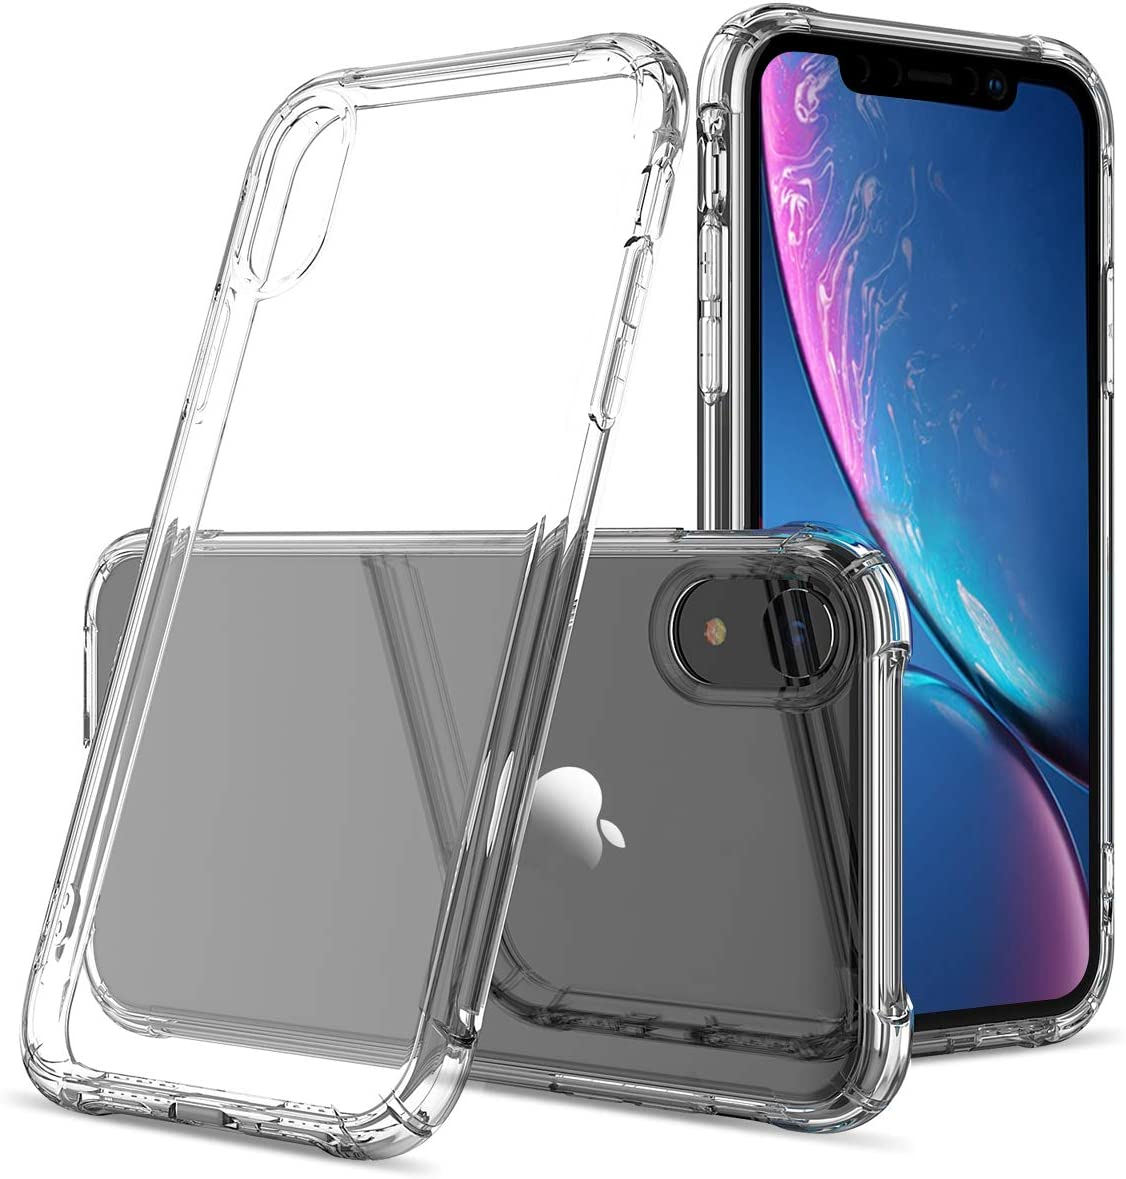 GREATRULY Clear Phone Case for iPhone XR 6.1 Inch (2018 Release),Transparent Slim Soft TPU Bumper Silicone Cover Shell,Cystal Clear